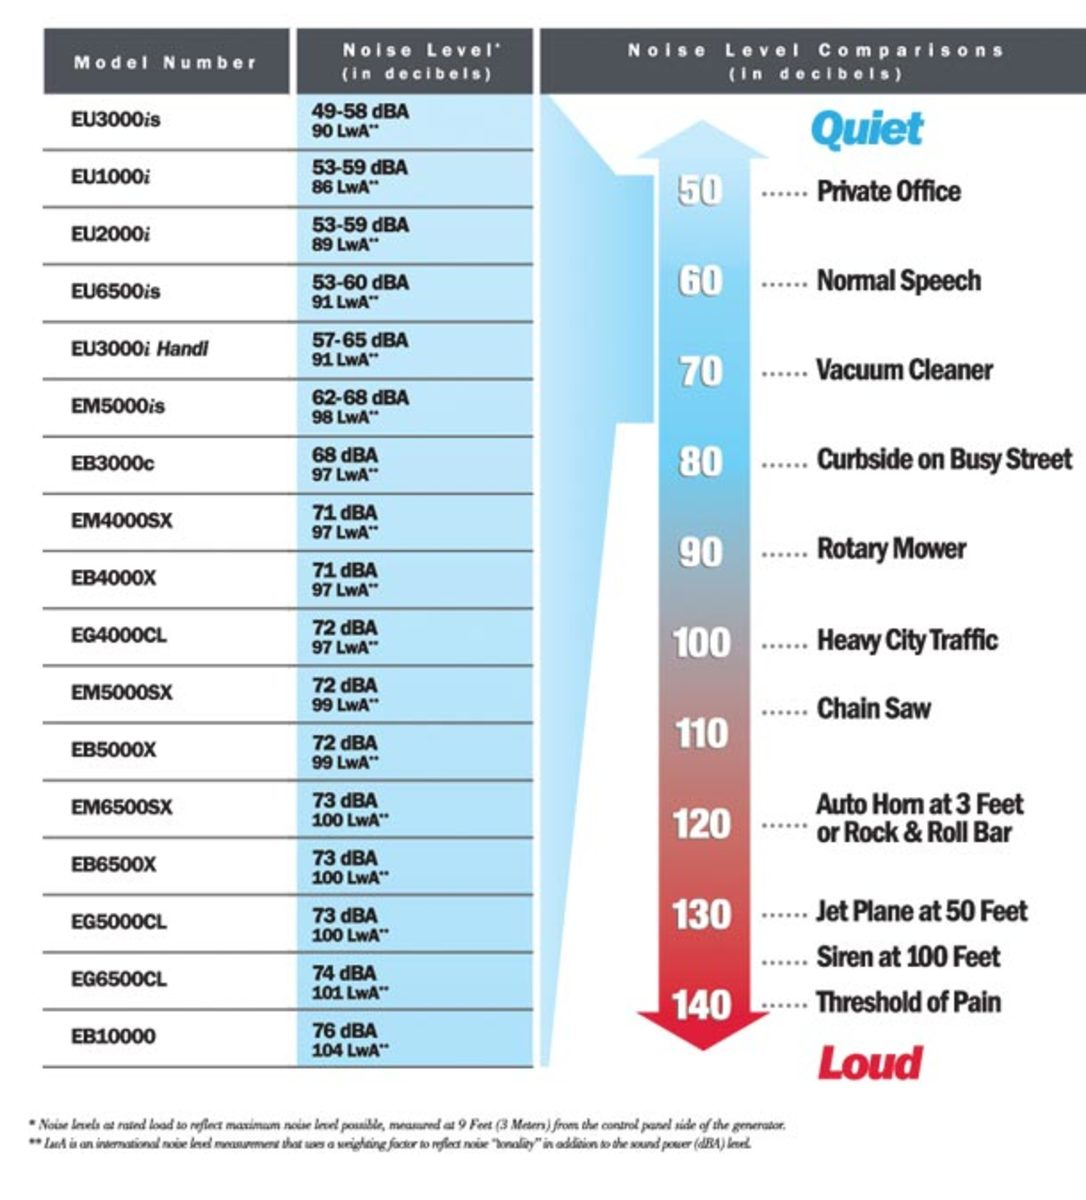 See the thumbnail for the full decibel level scale.